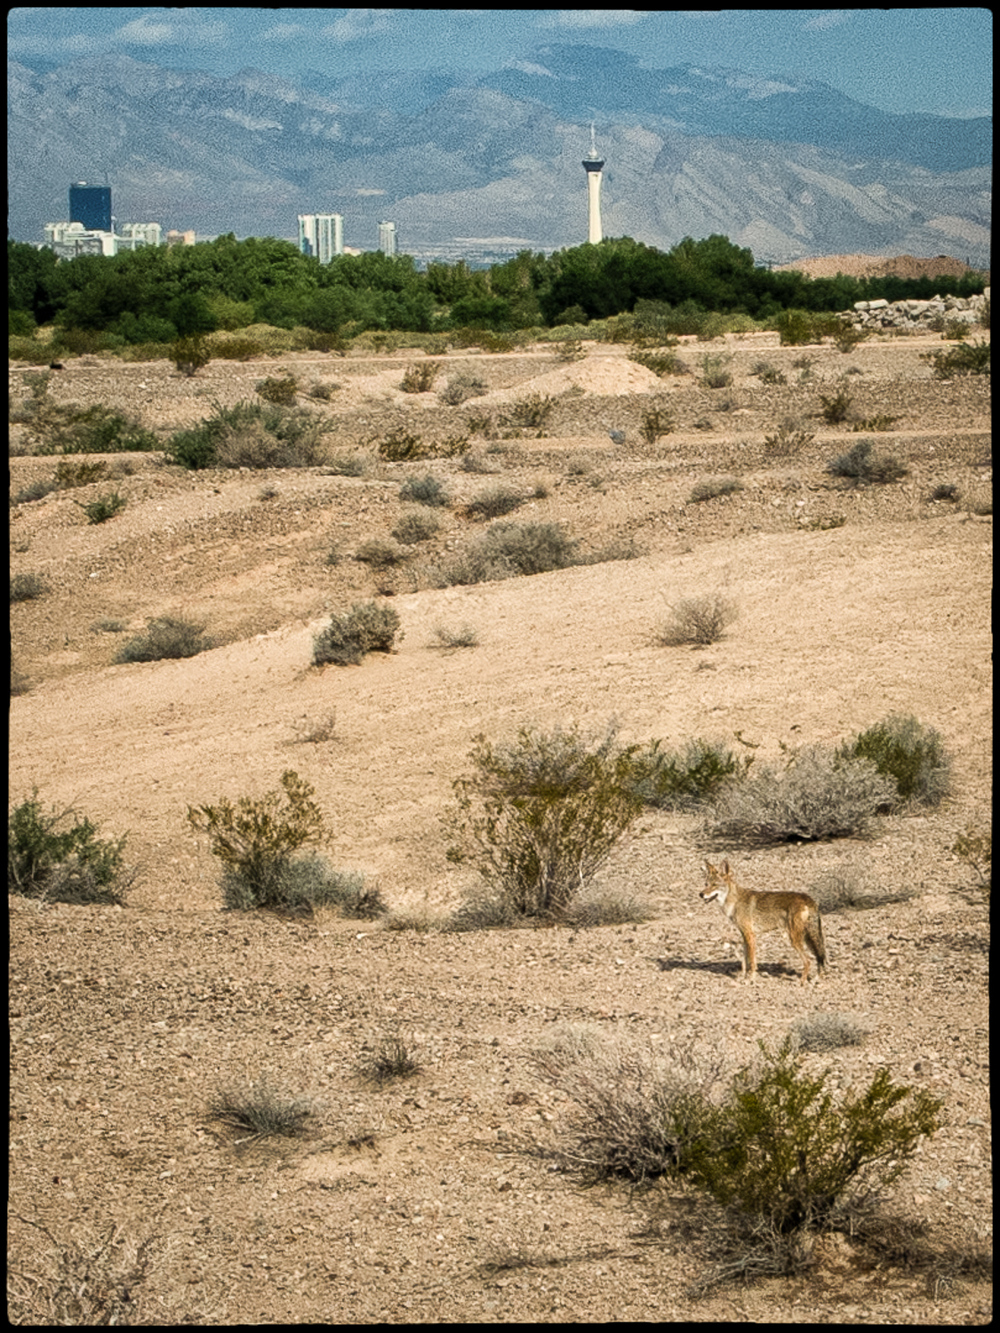 If you go early, look for coyotes.